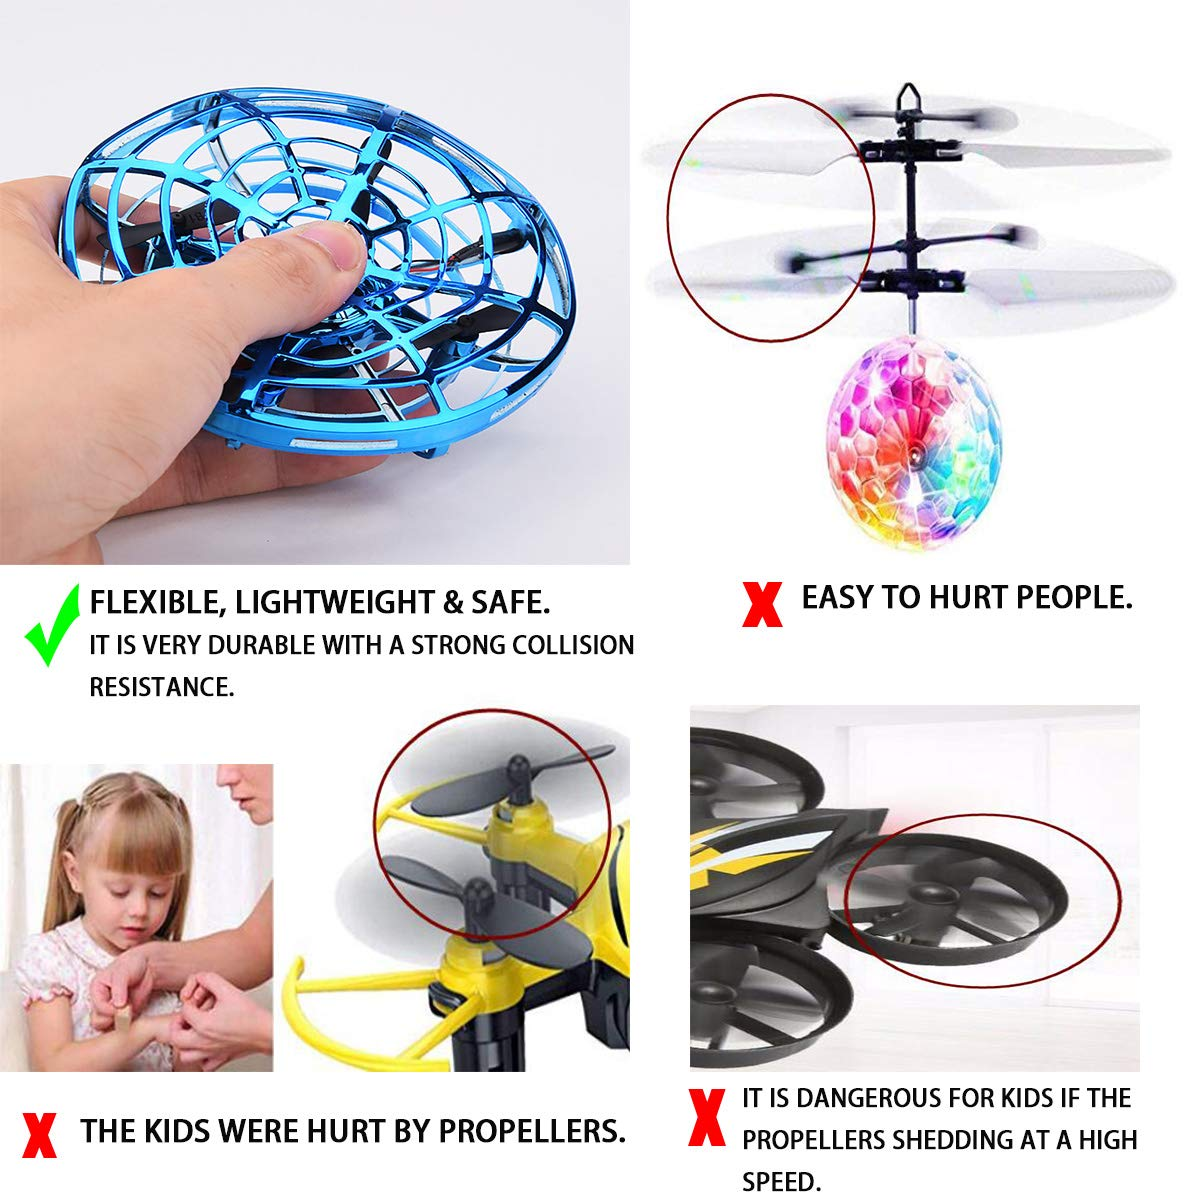 Hand Operated Drones for Kids or Adult, Mini Drone Flying Ball Toy, Scoot UFO Hand Free Infrared Sensing Drone Toys for Boys and Girls Holiday and Birthday Gifts by Nice Dream (Image #3)